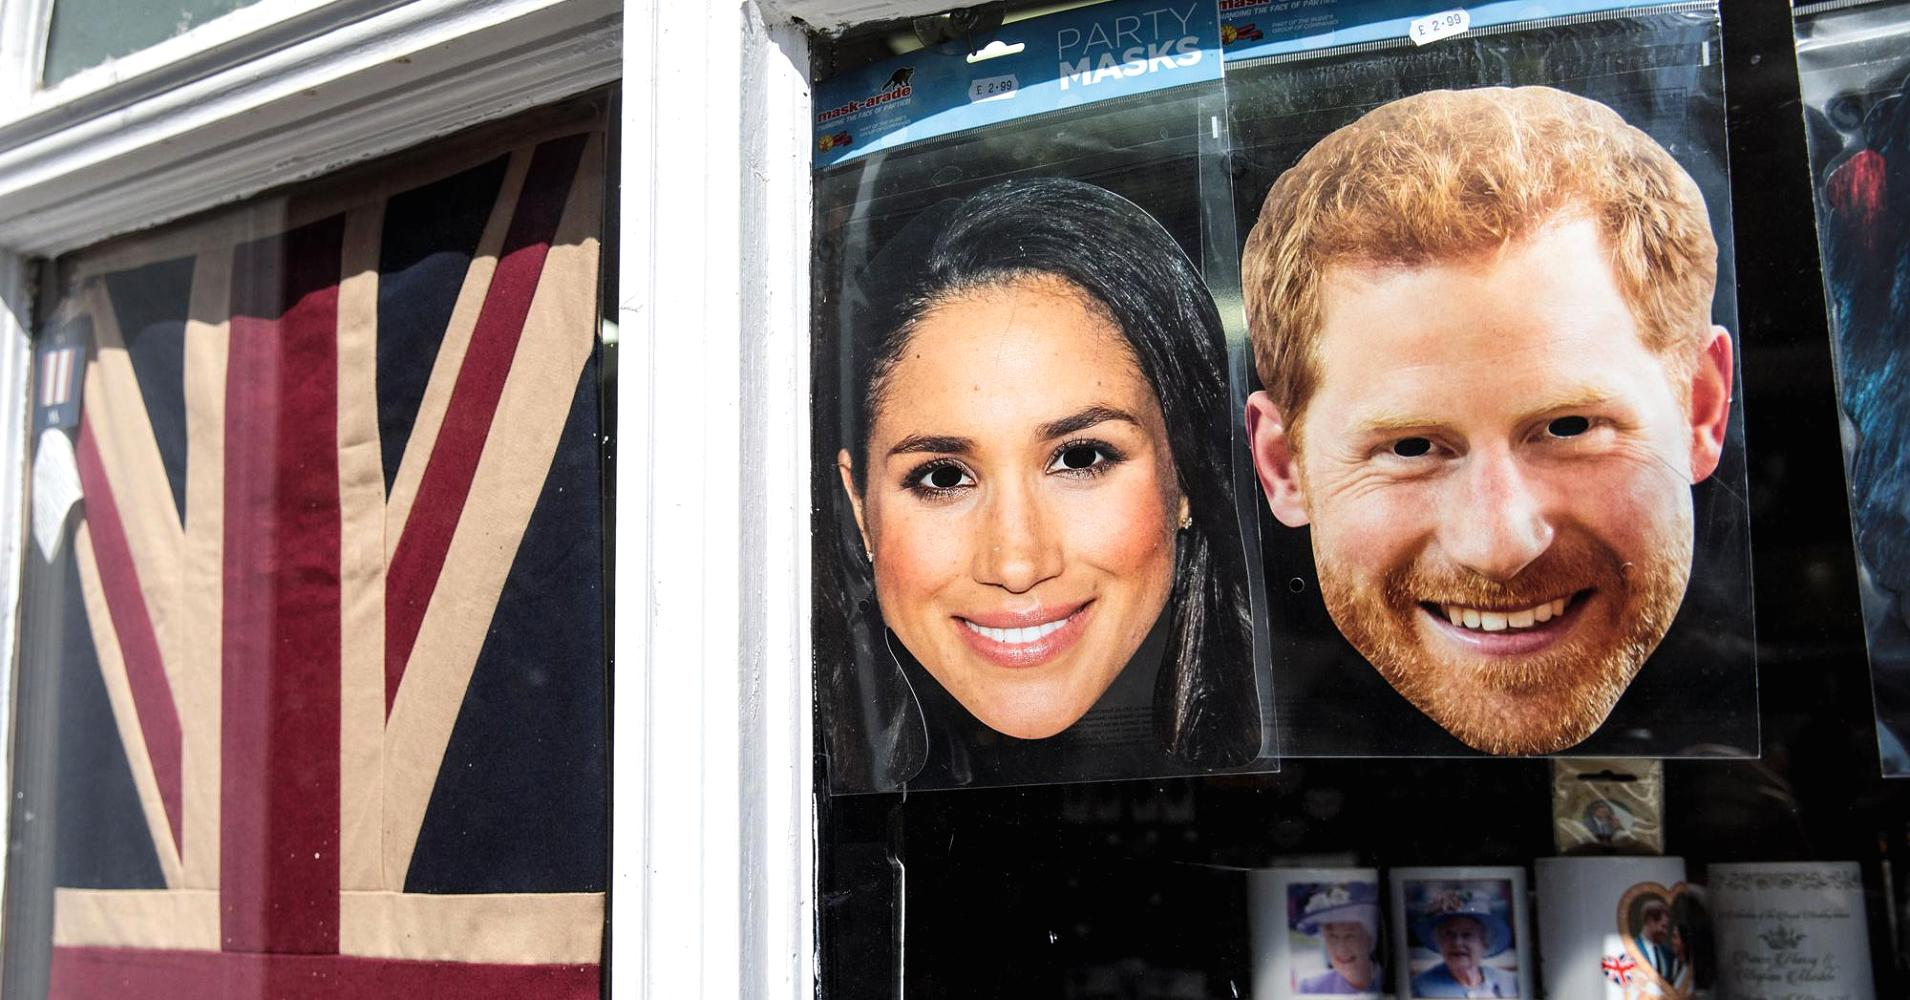 That Facebook royal wedding quiz? It could put you at risk